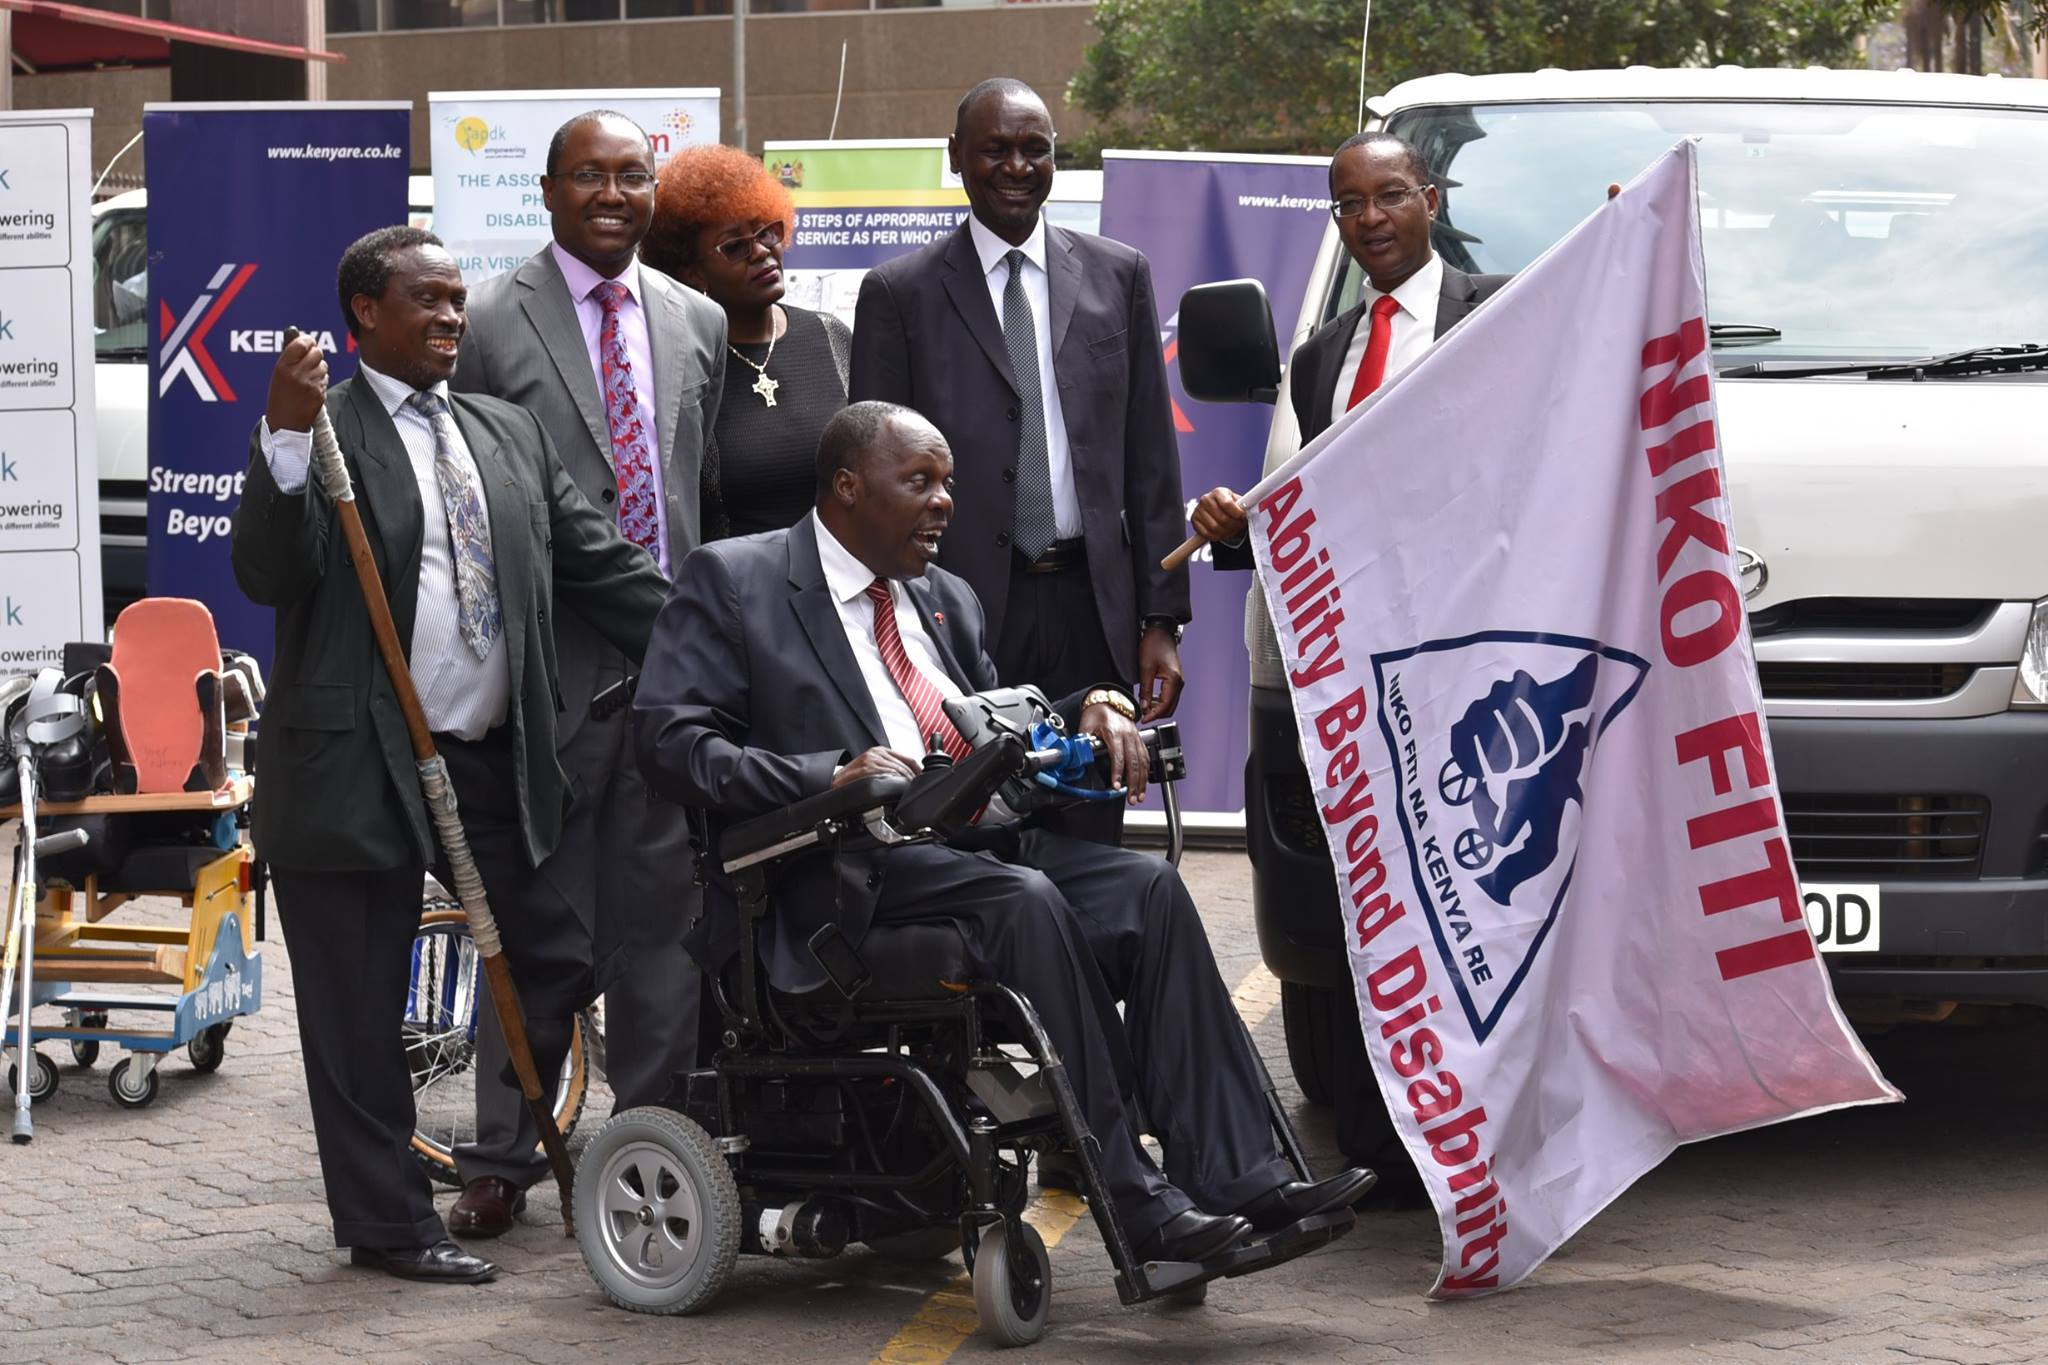 Kenya Re flags off Phase 2 of the Niko Fiti Campaign